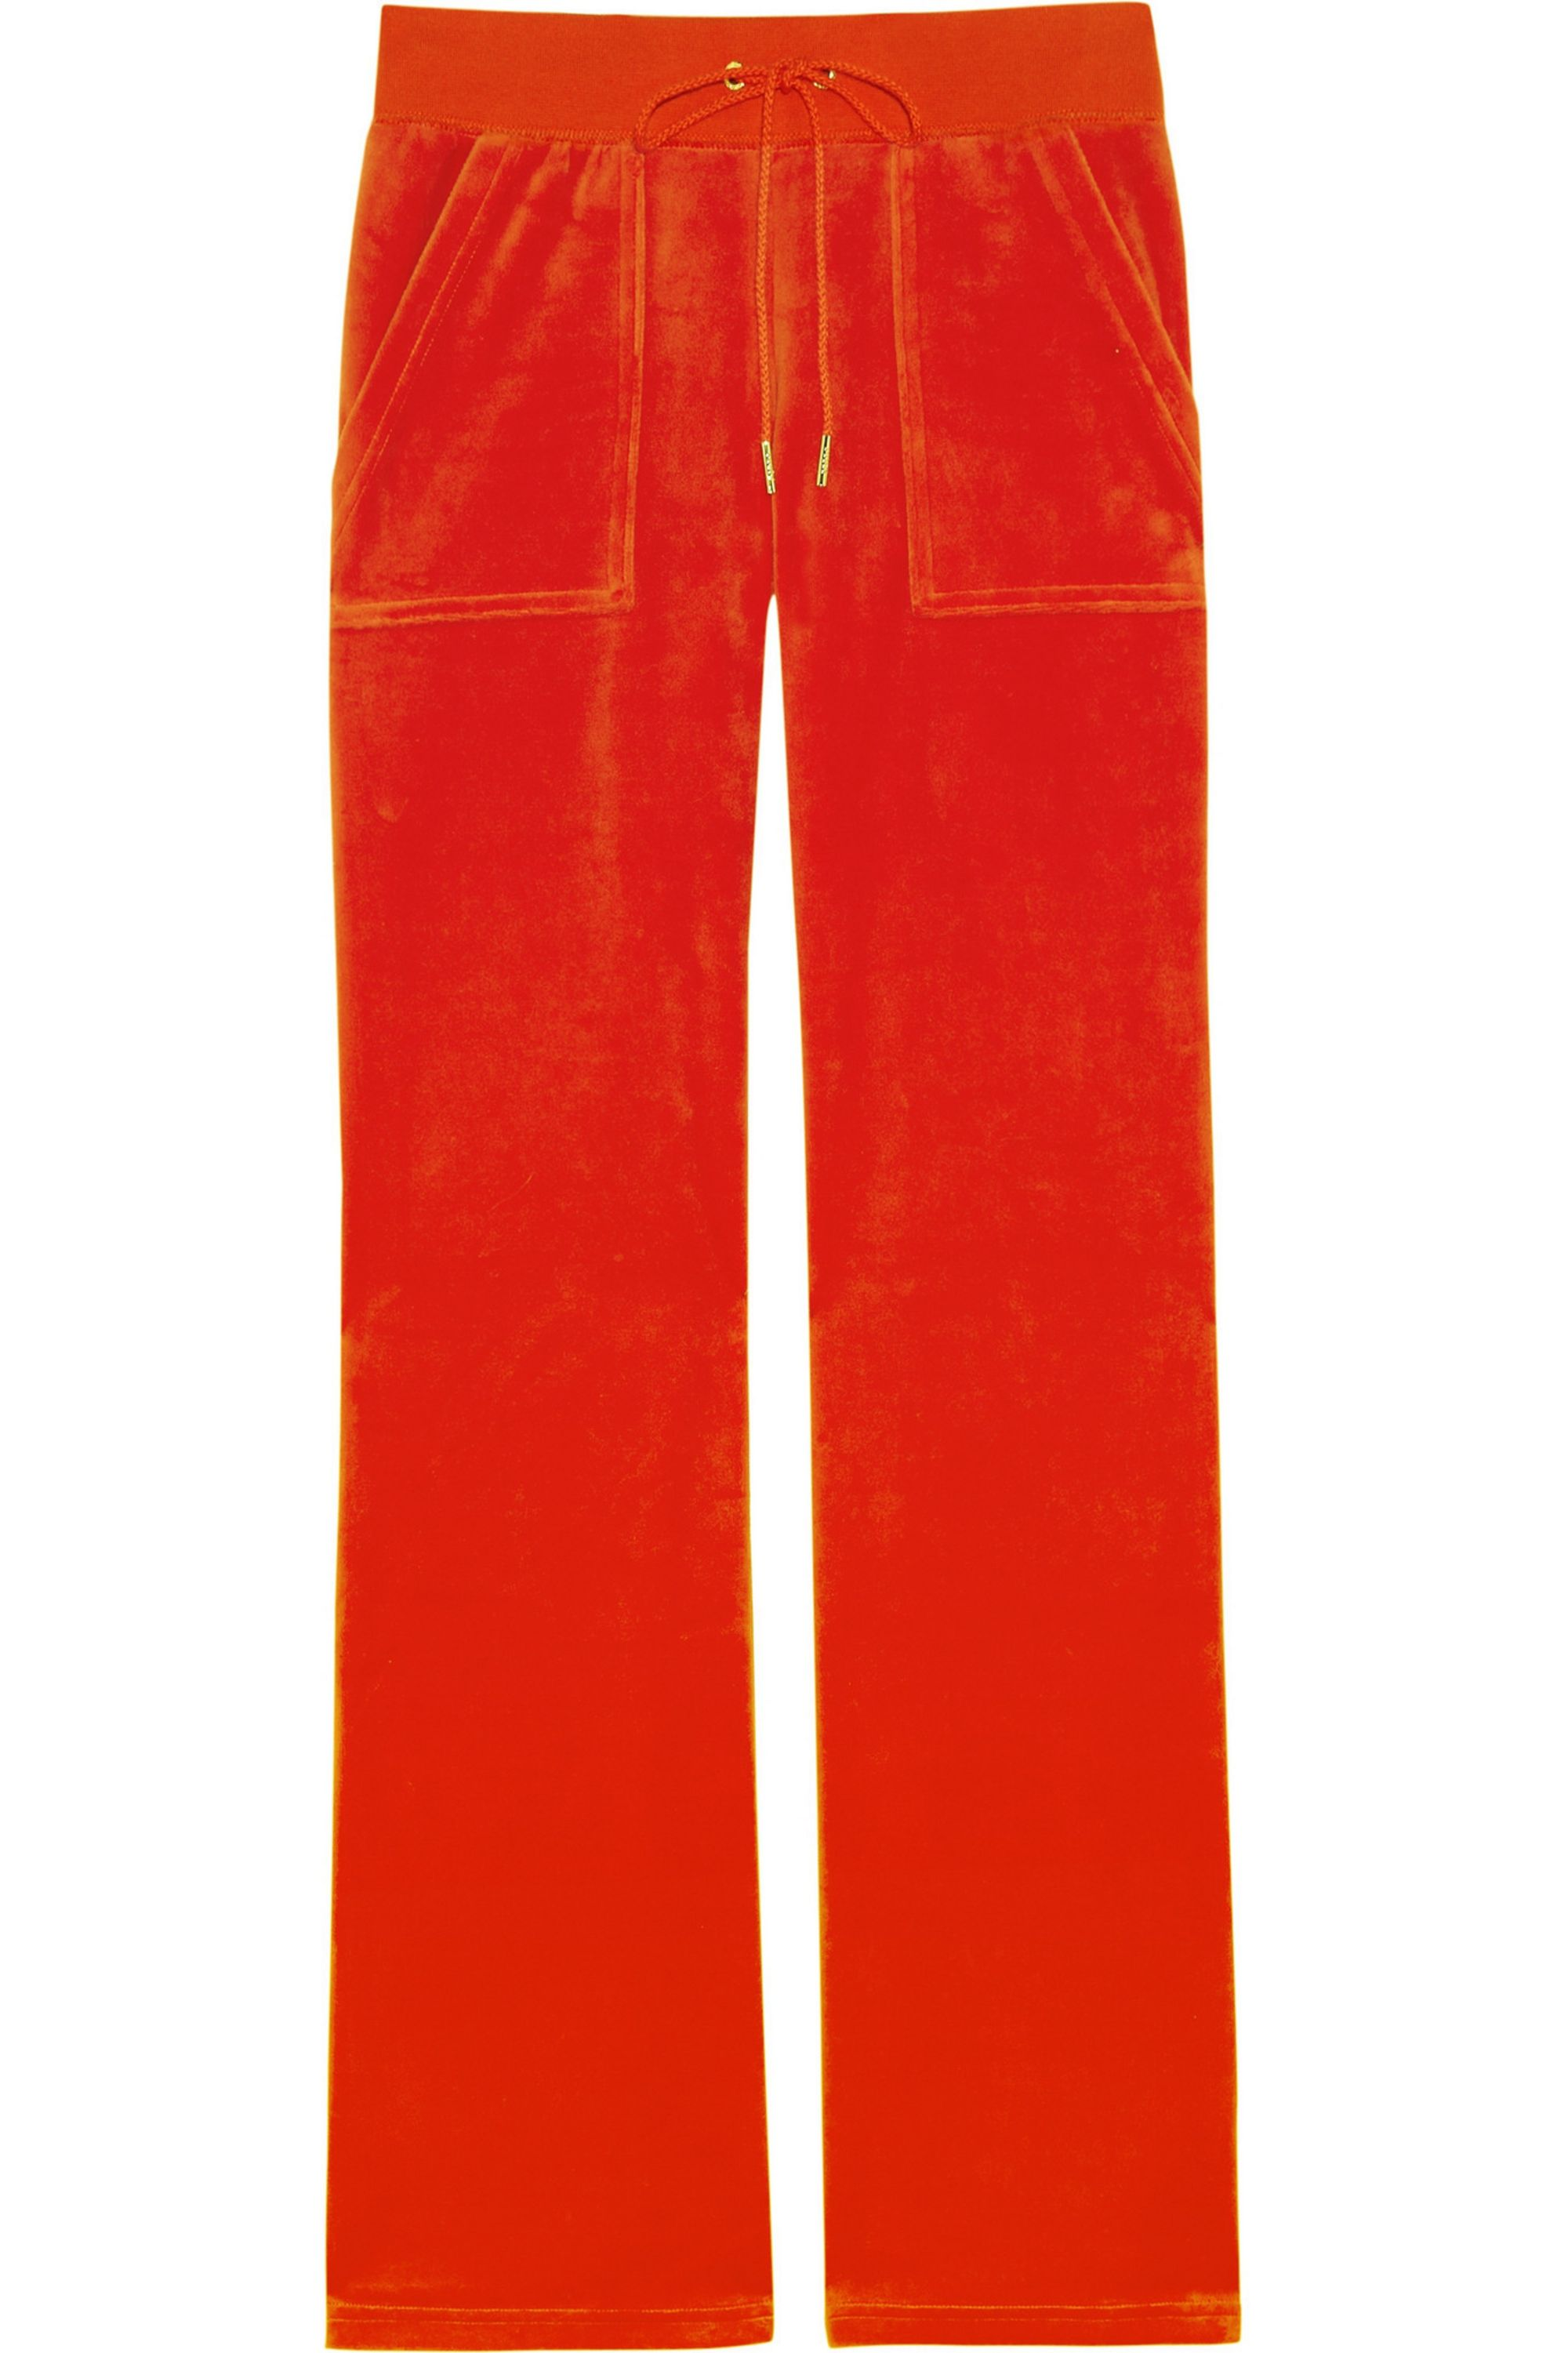 Tomato Red Velour Track Pants Juicy Couture Net A Porter